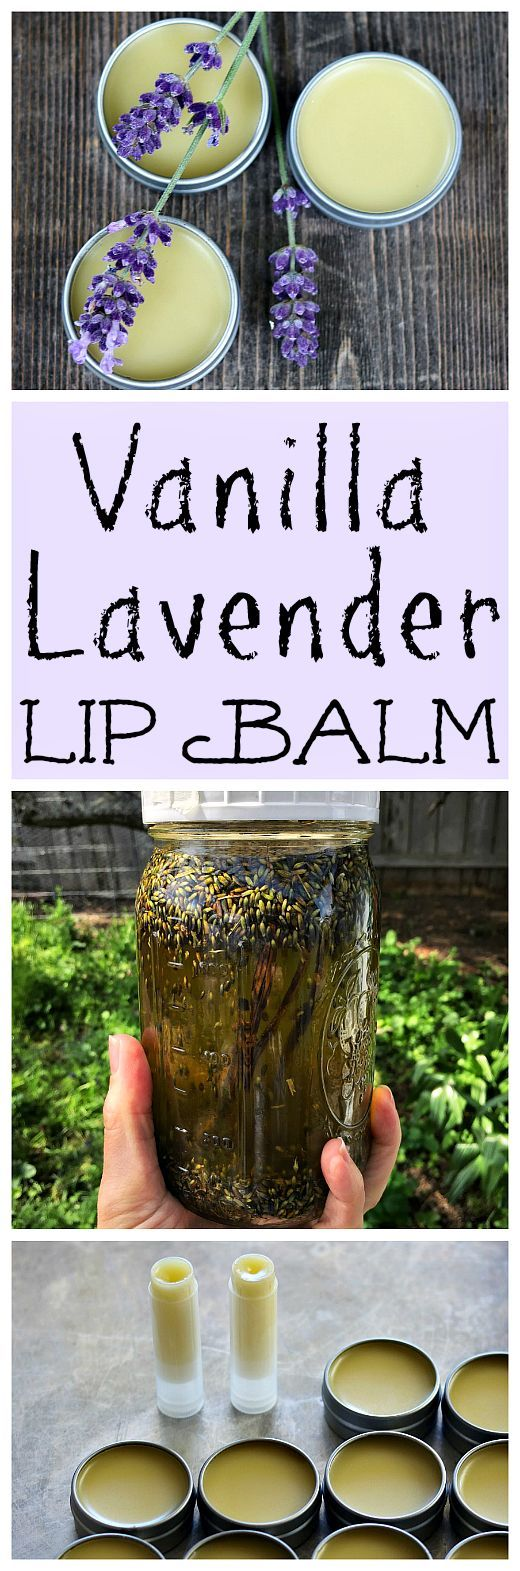 Make your own homemade vanilla lavender lip balm. It's an easy DIY herbal pr...